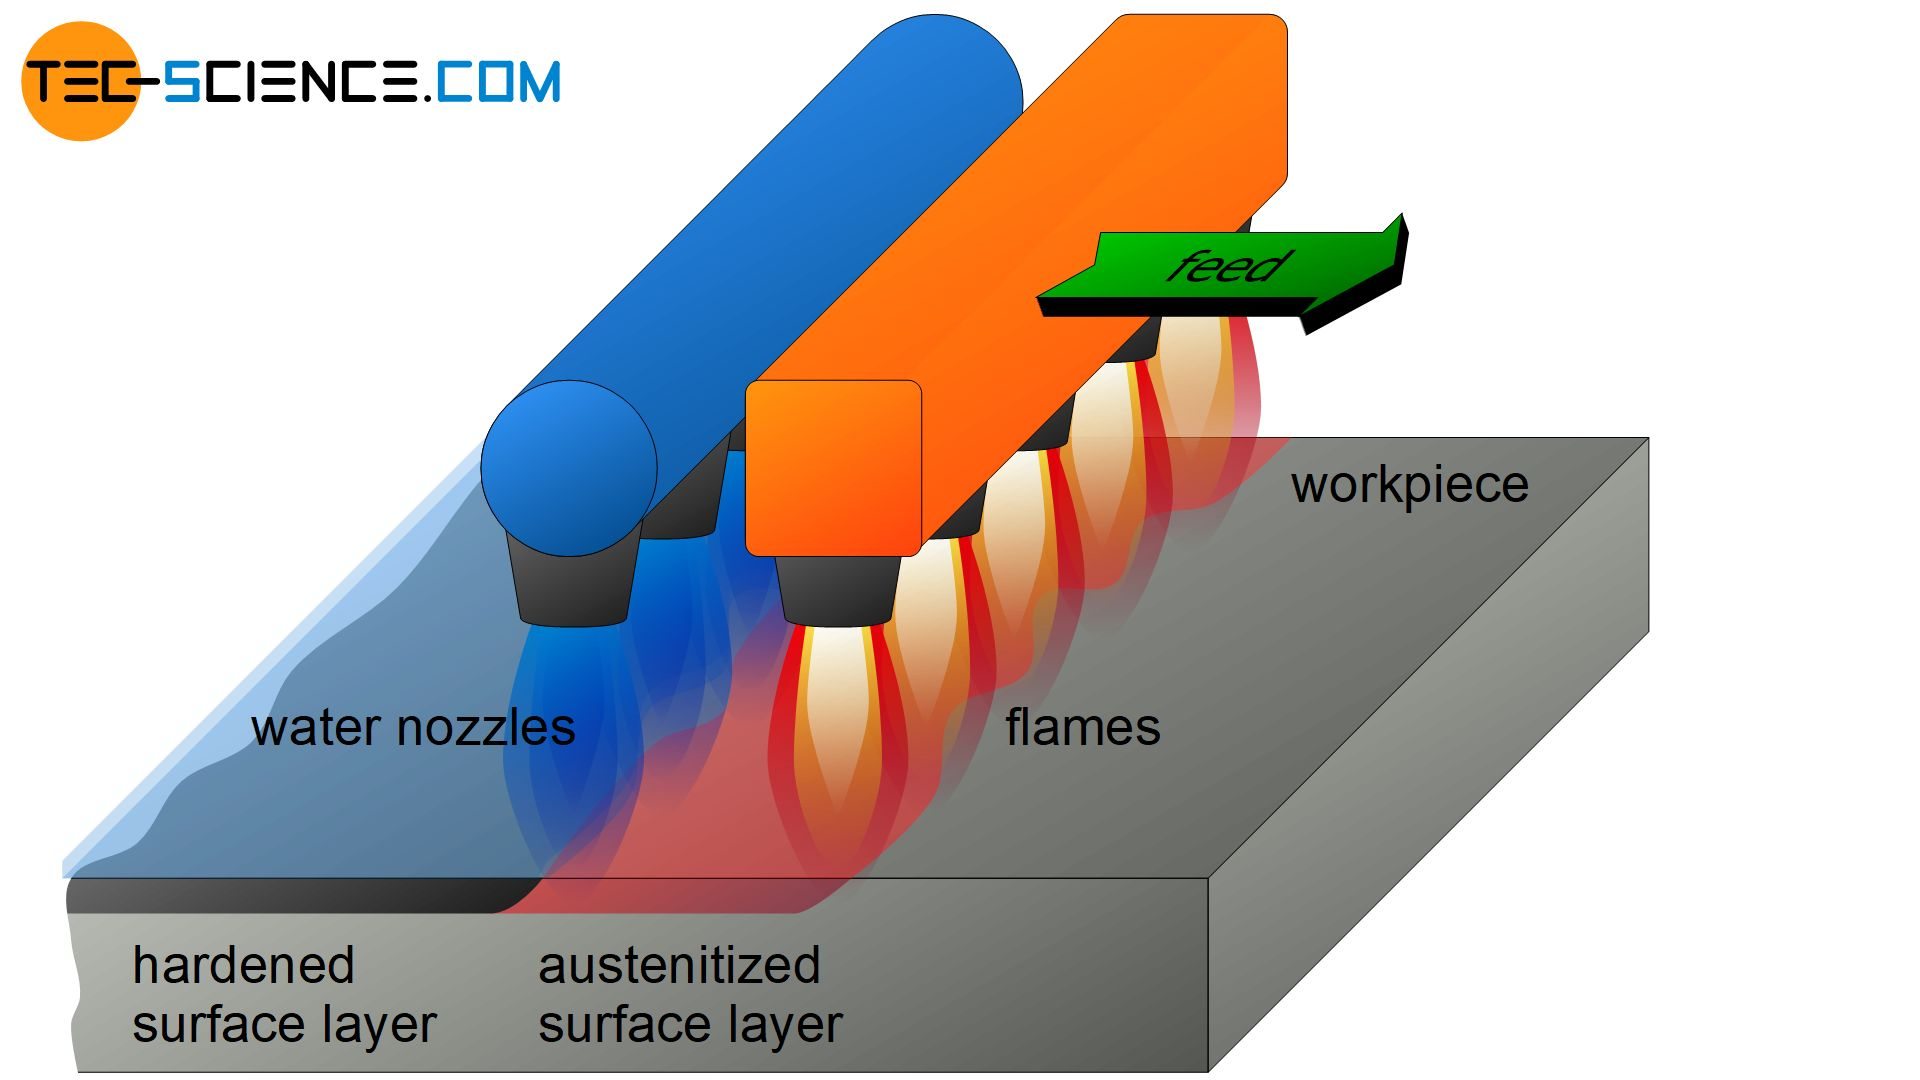 Flame hardening of a surface